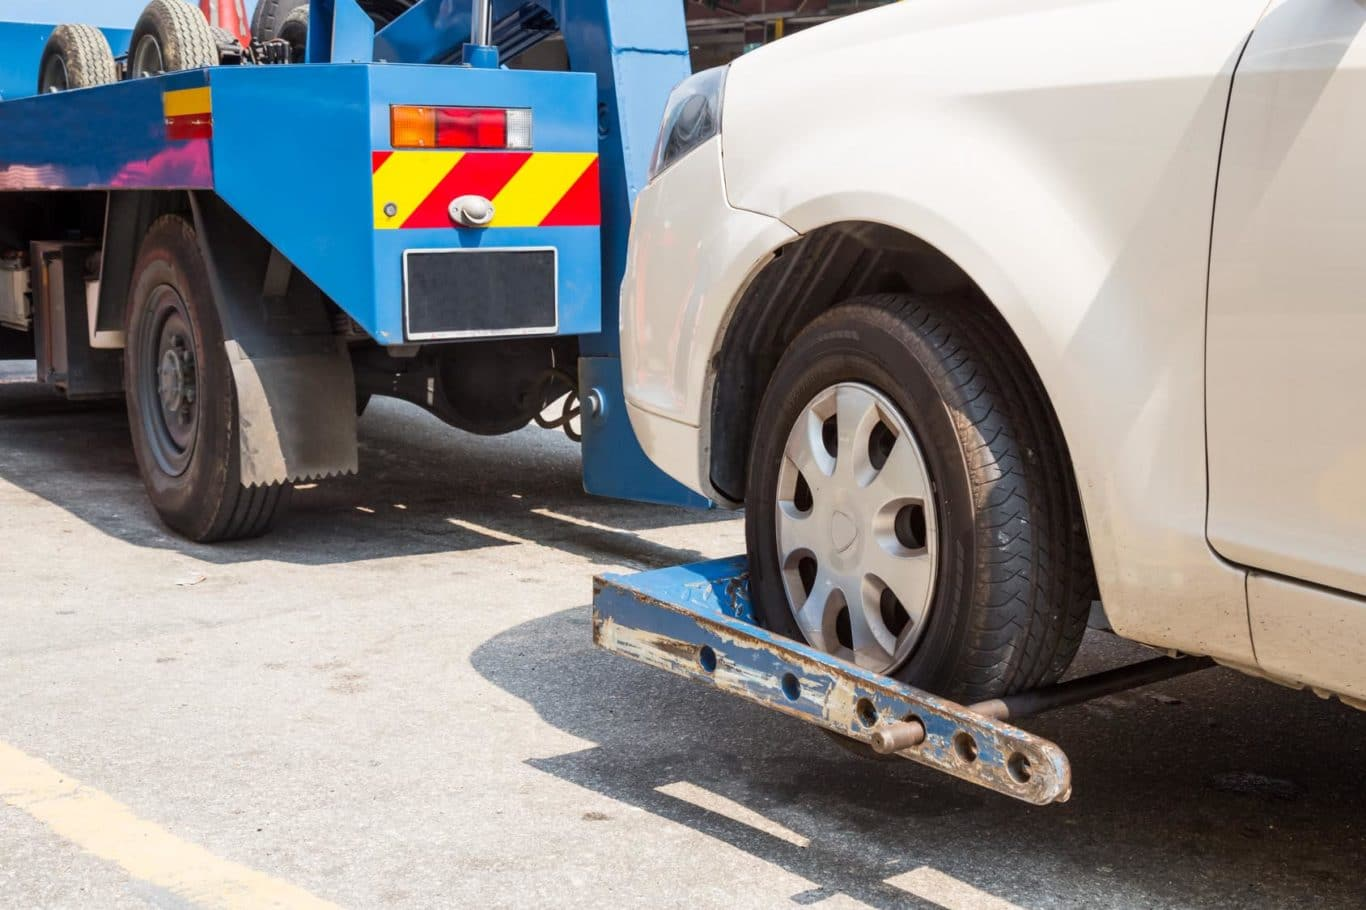 Glendalough expert Towing And Recovery Dublin services